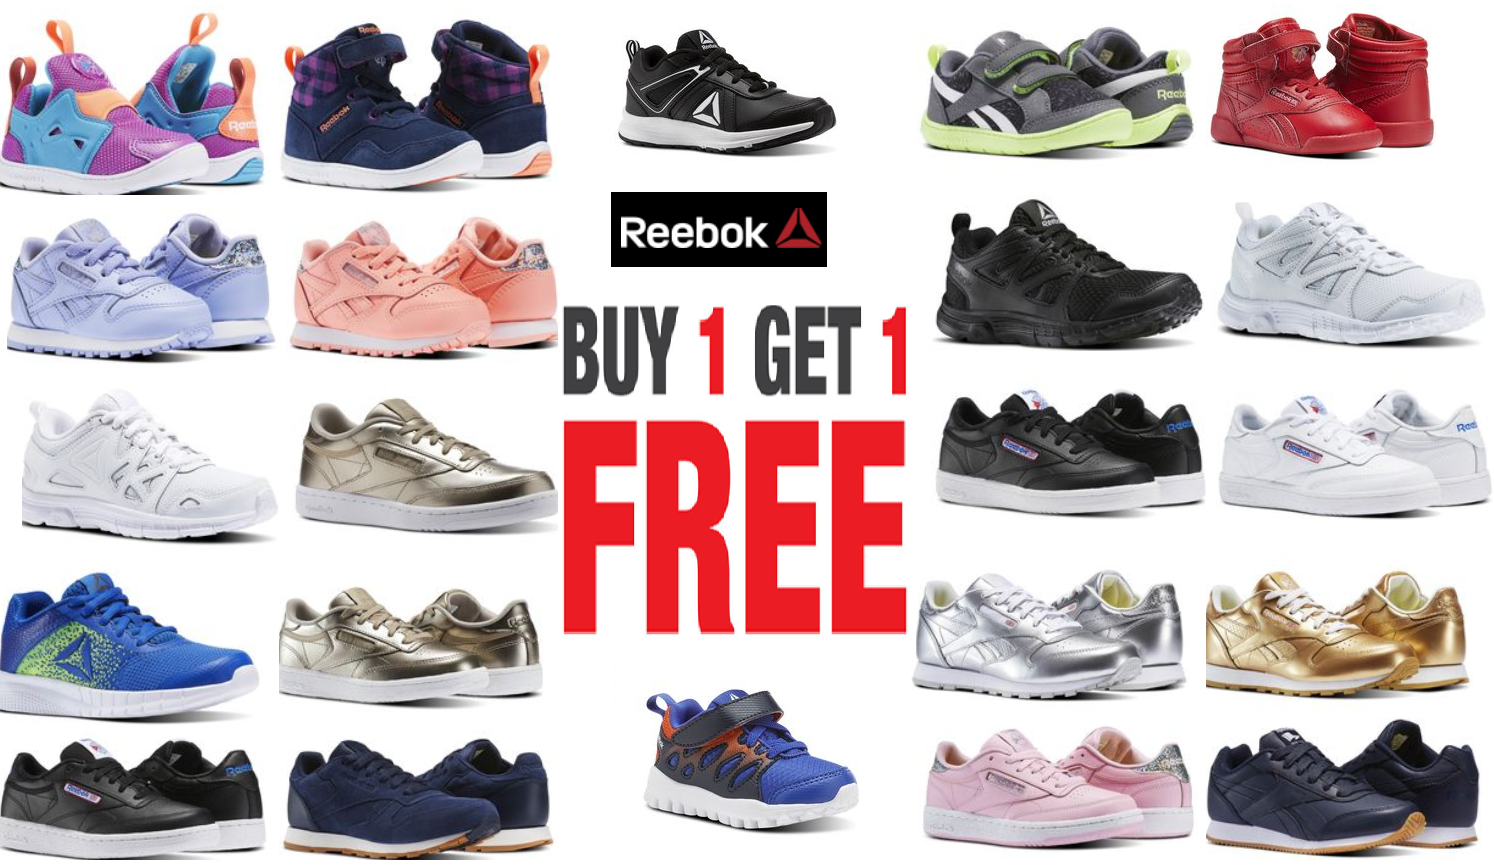 c4c5966871e Reebok Kids  and Toddler Sneakers Buy 1 Get 1 Free + Free Shipping   2  Pairs From  29.97